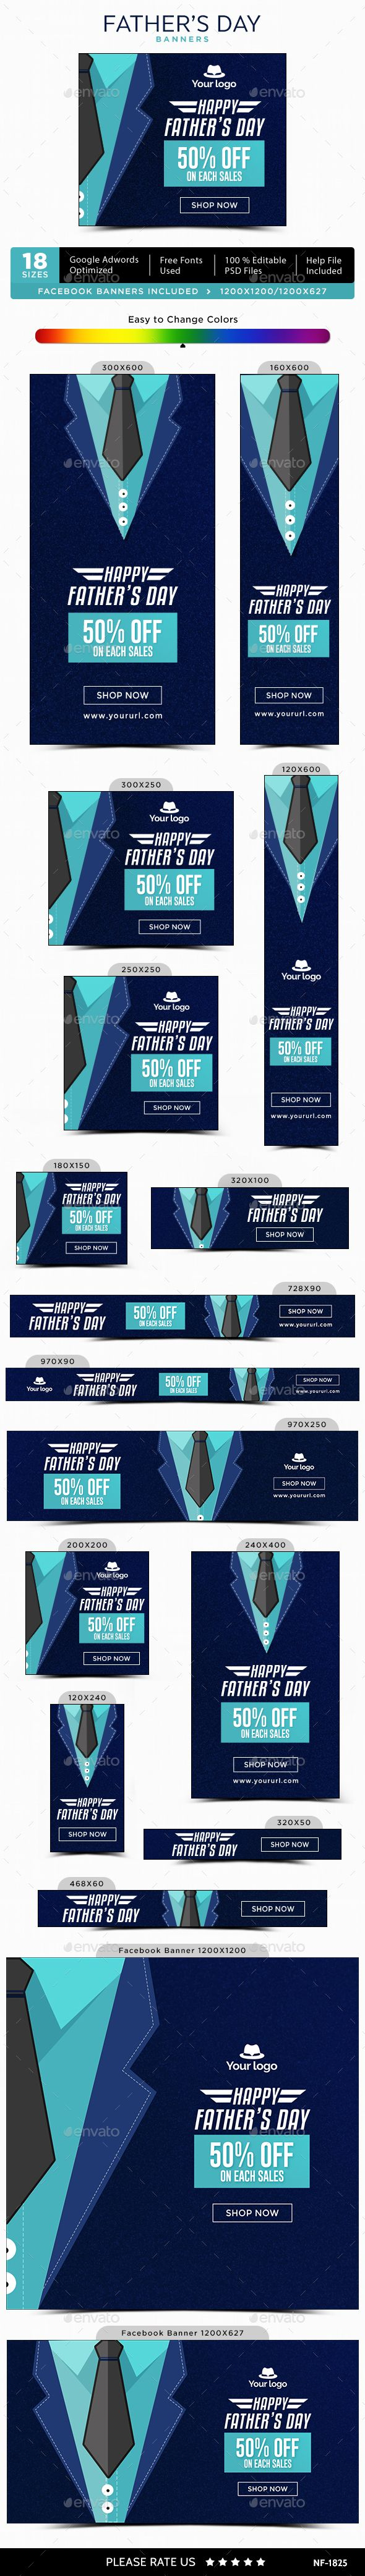 Fathers Day Banners - Image Included - #Banners & Ads #Web Elements Download here: https://graphicriver.net/item/fathers-day-banners-image-included/20122599?ref=alena994